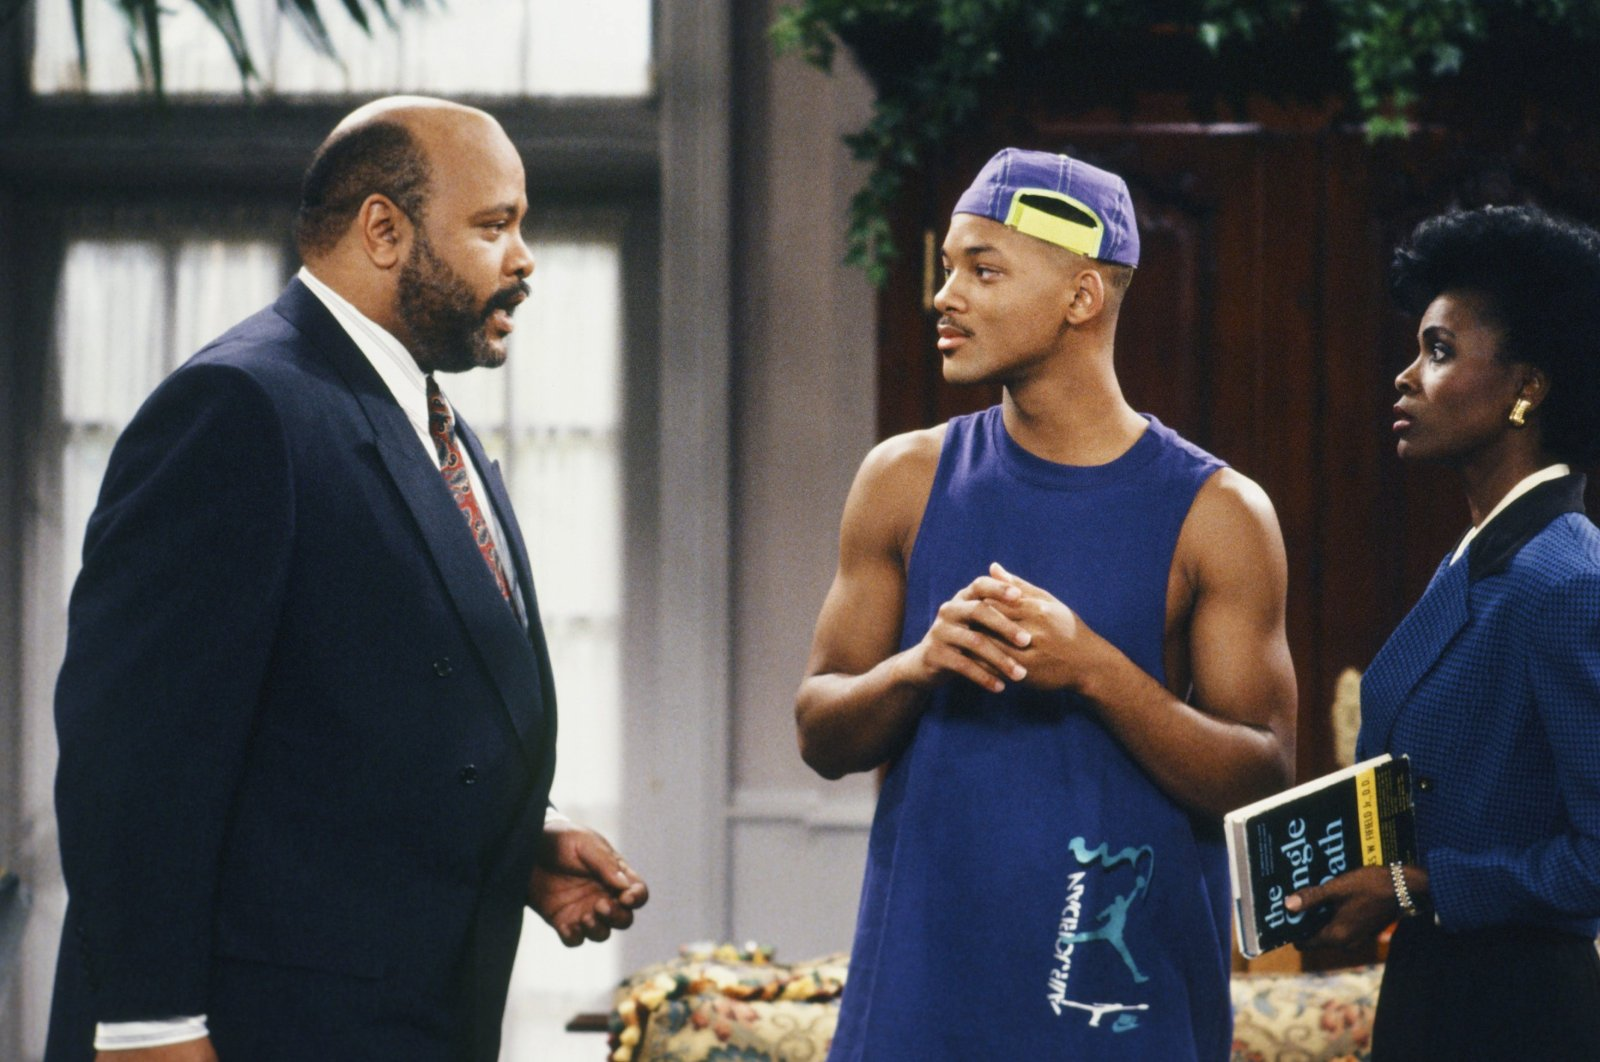 """This photo provided by NBC shows (L-R) James Avery as Philip Banks, Will Smith as William """"Will"""" Smith, and Janet Hubert as Vivian Banks, in Episode 7, """"Def Poet's Society"""" from the TV series, """"The Fresh Prince of Bel-Air."""" (AP PHOTO)"""